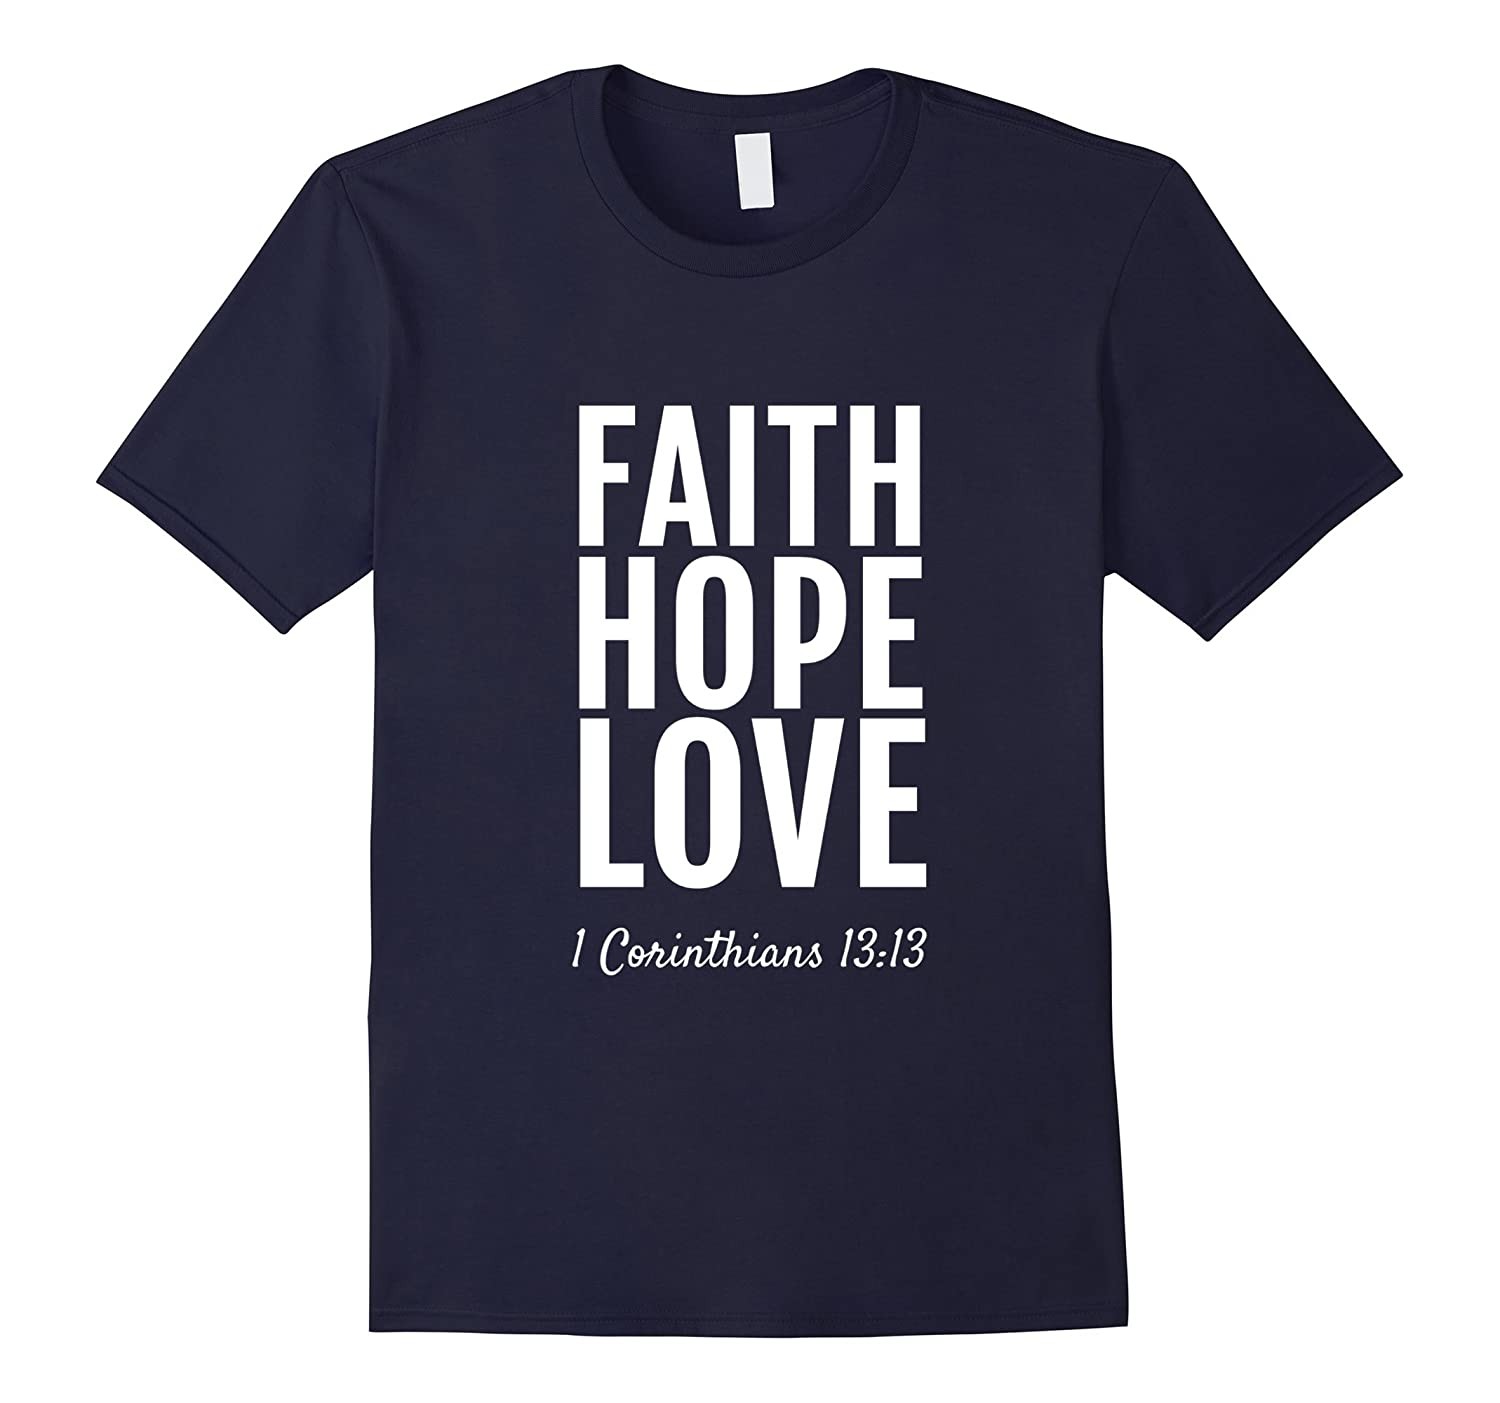 1 Corinthians 13:13 T-Shirt Faith Hope Love Christian TShirt-Rose